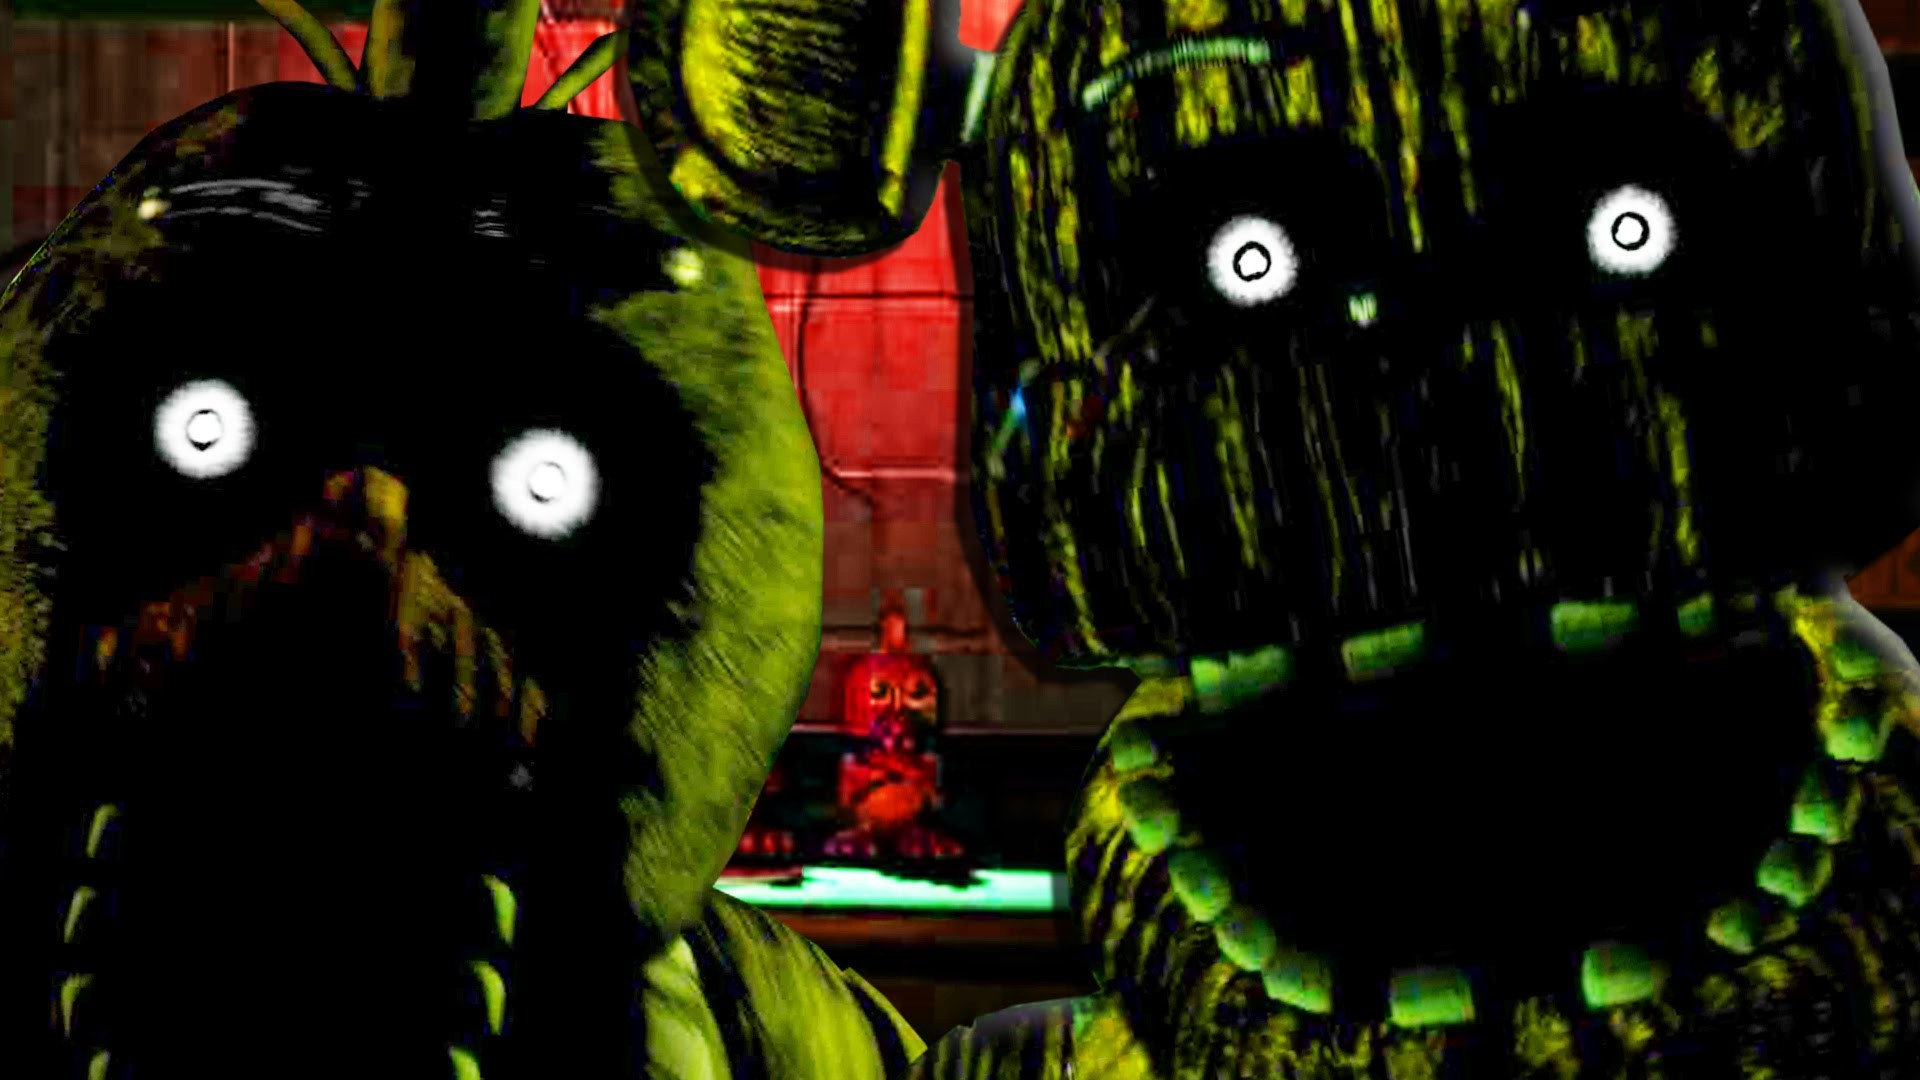 1920x1080 FIVE NIGHTS AT FREDDY'S 3 - FREDDY FAZBEAR AND CHICA JUMPSCARE! Night 2, 3  Gameplay (FNAF 3) - YouTube